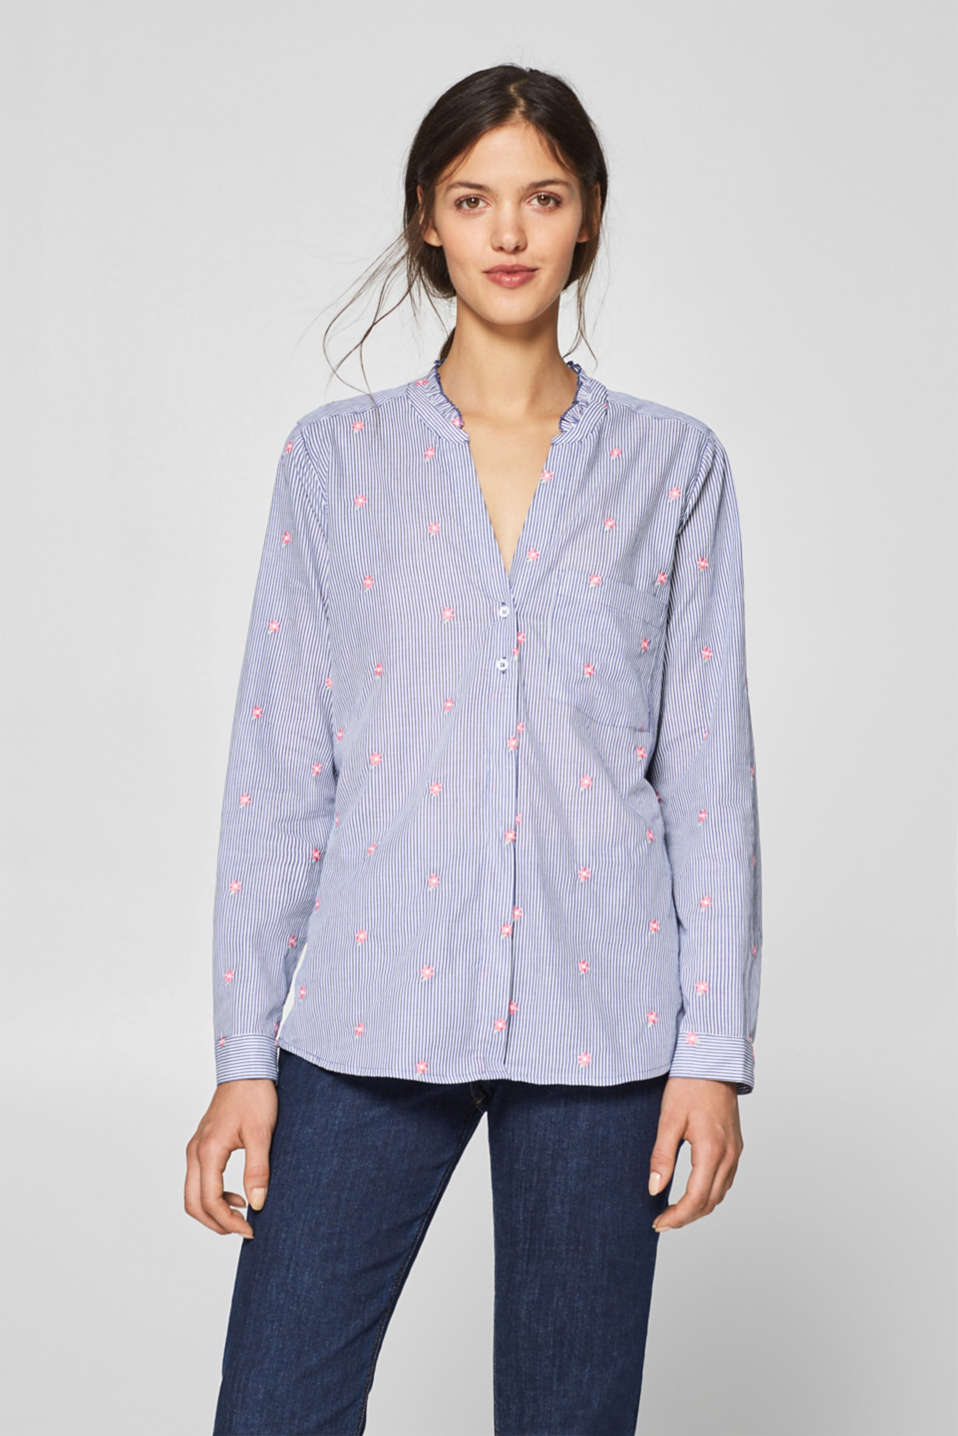 Esprit - Embroidered frilled blouse, 100% cotton